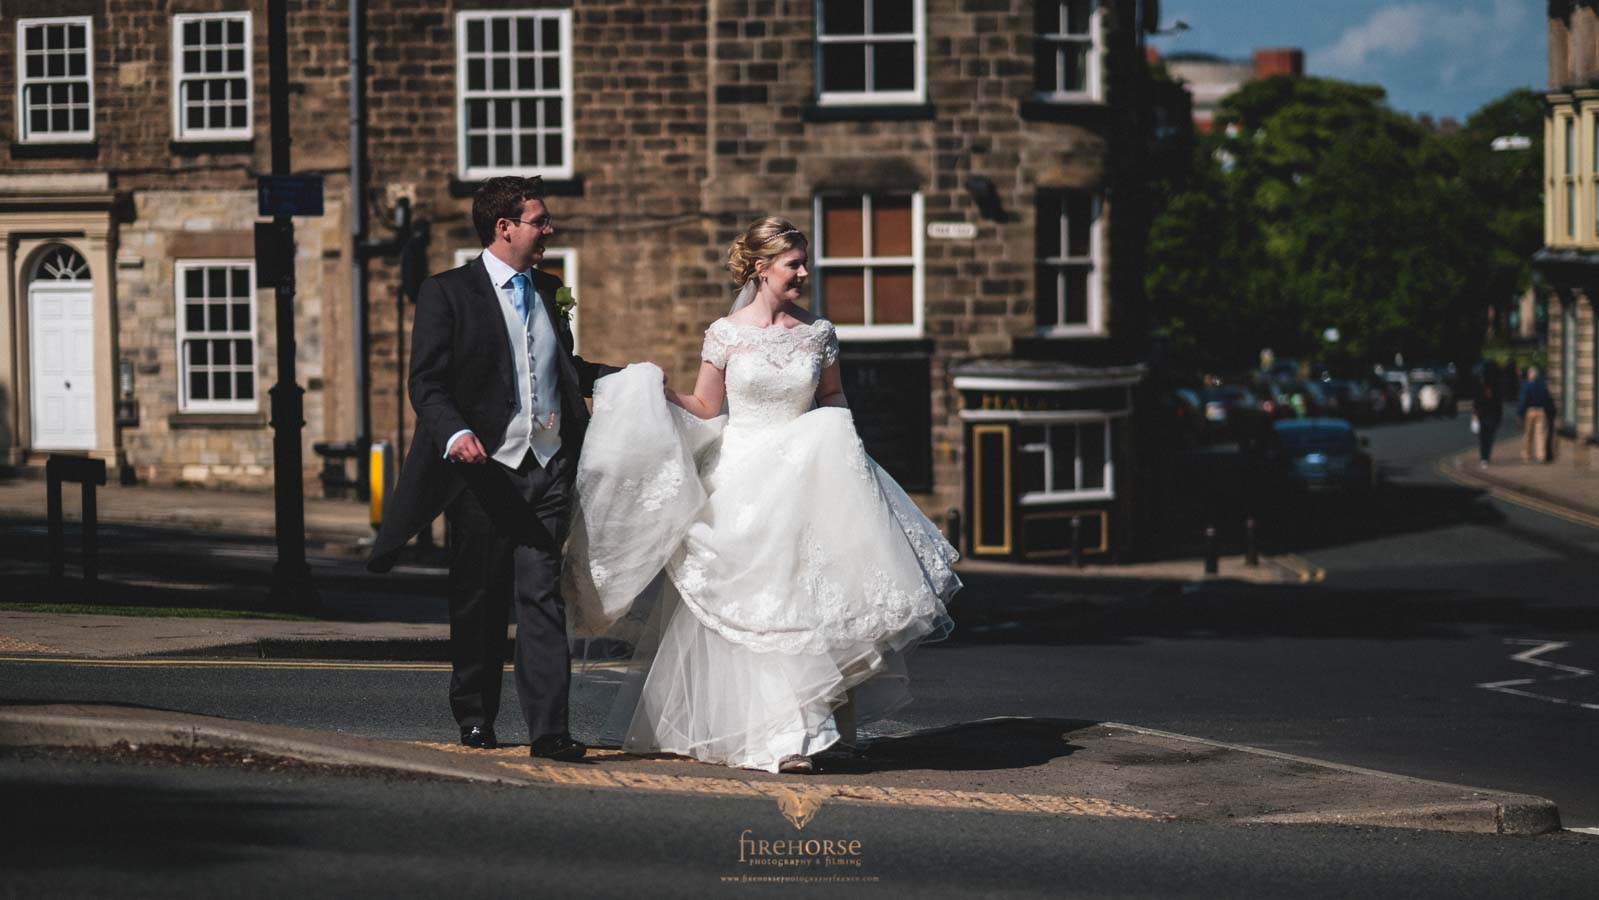 Harrogate-Wedding-154